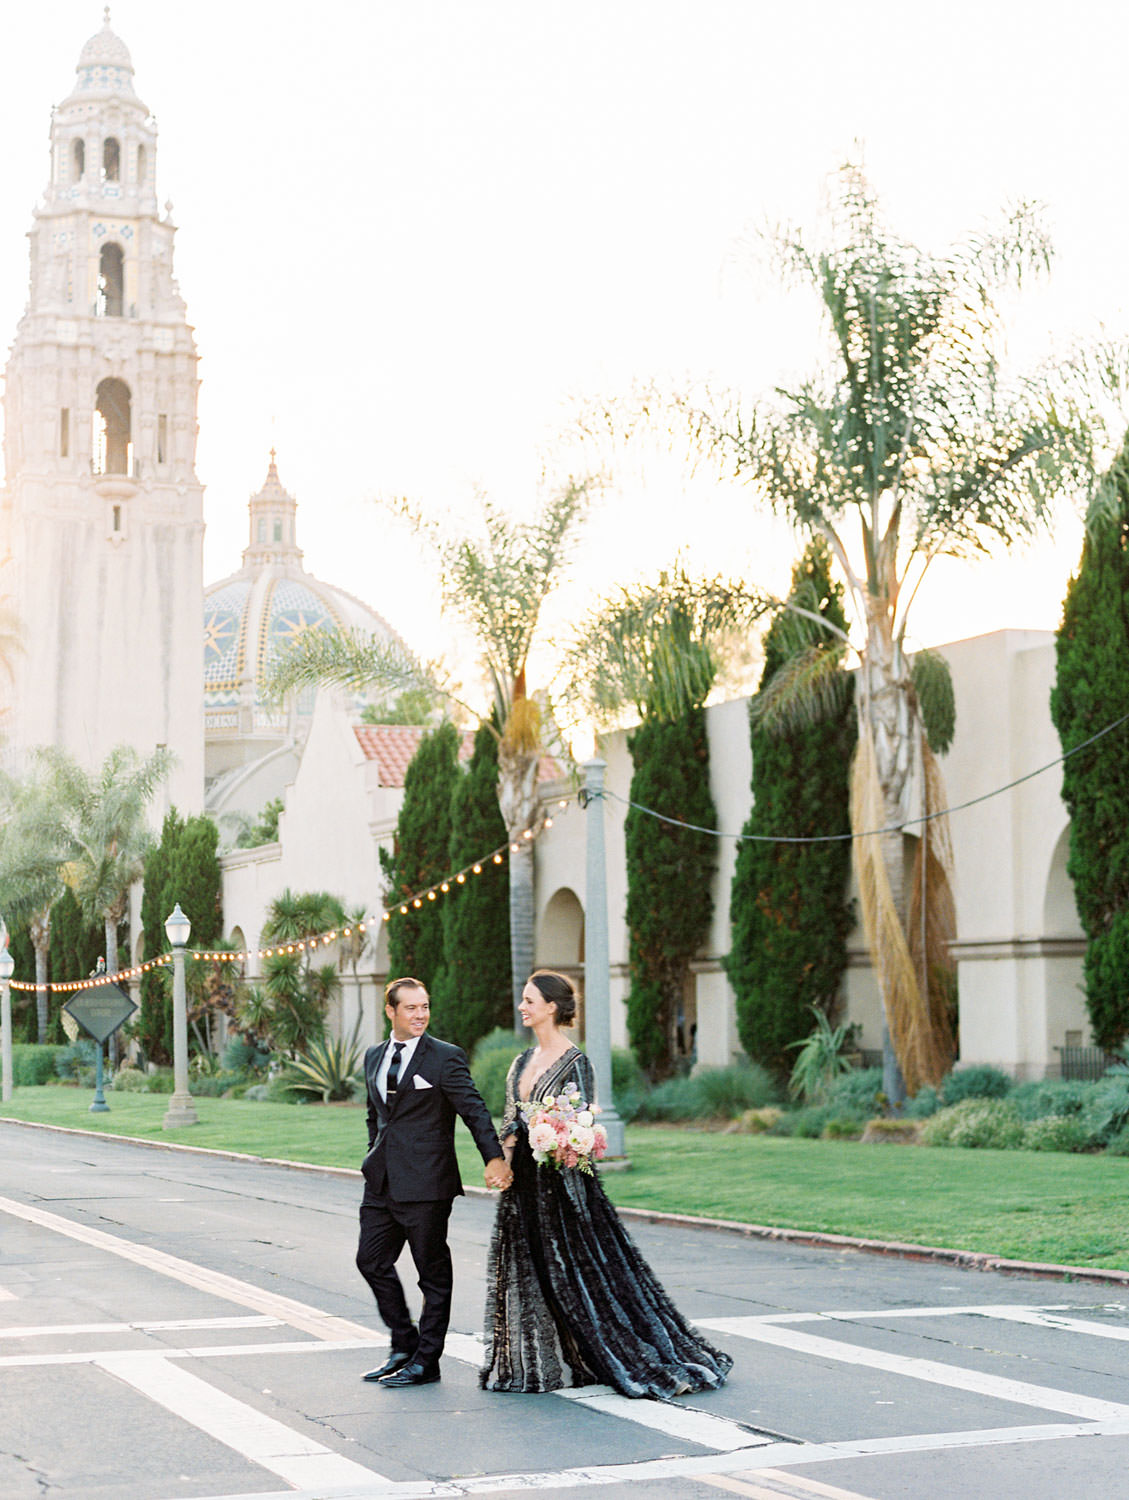 Bride in a black long sleeve lace Marchesa couture gown holding a pink, ivory, and green bouquet. Groom in a black suit and tie to match his wife in front of the bell tower. San Diego Anniversary Photos in Balboa Park on film by Cavin Elizabeth Photography